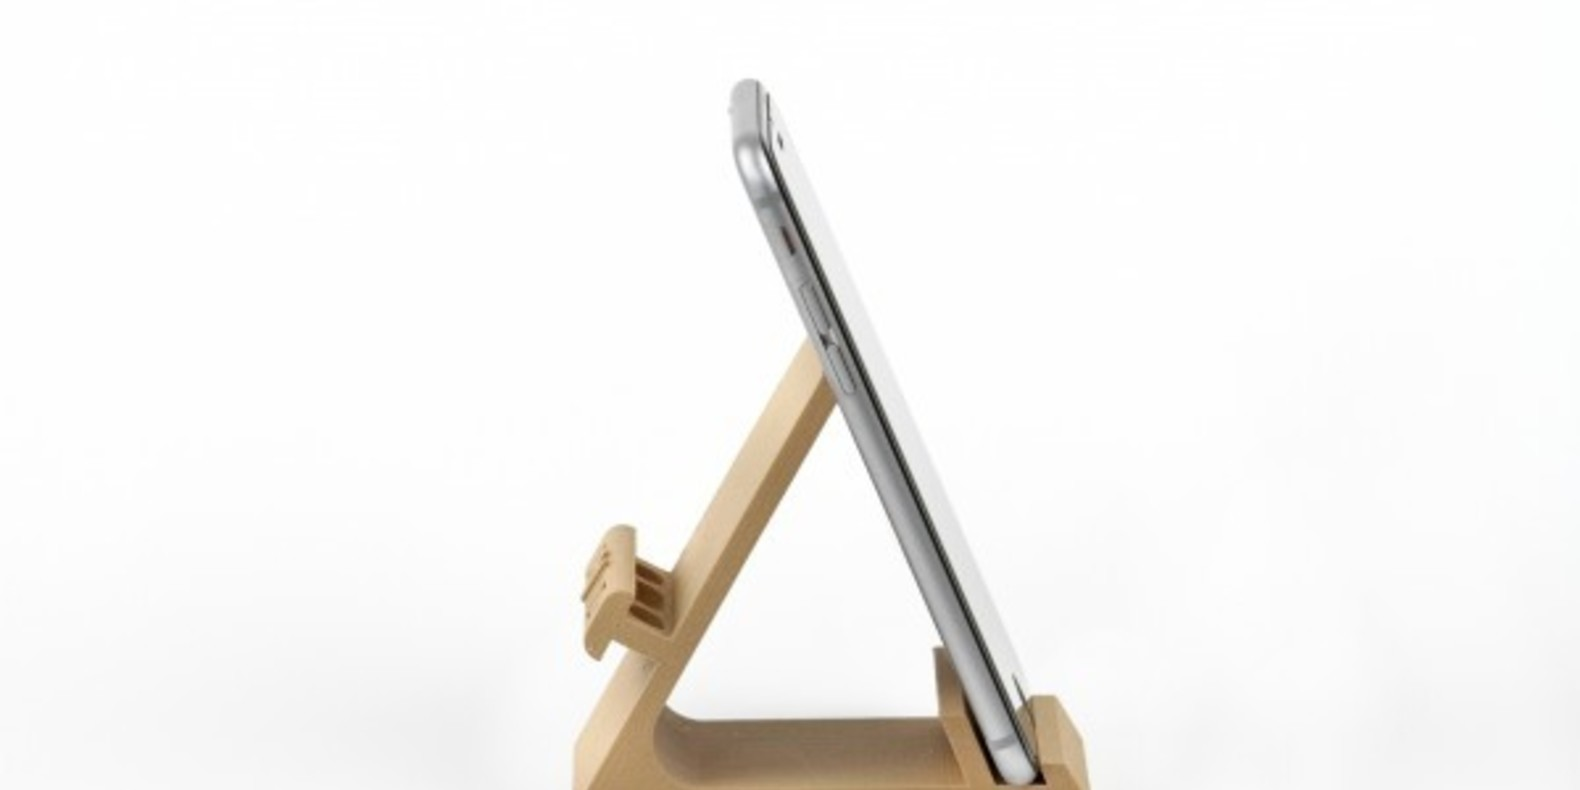 stand-iphone-holder-support-smartphone-imprimé-en-3D-cults-3.jpg